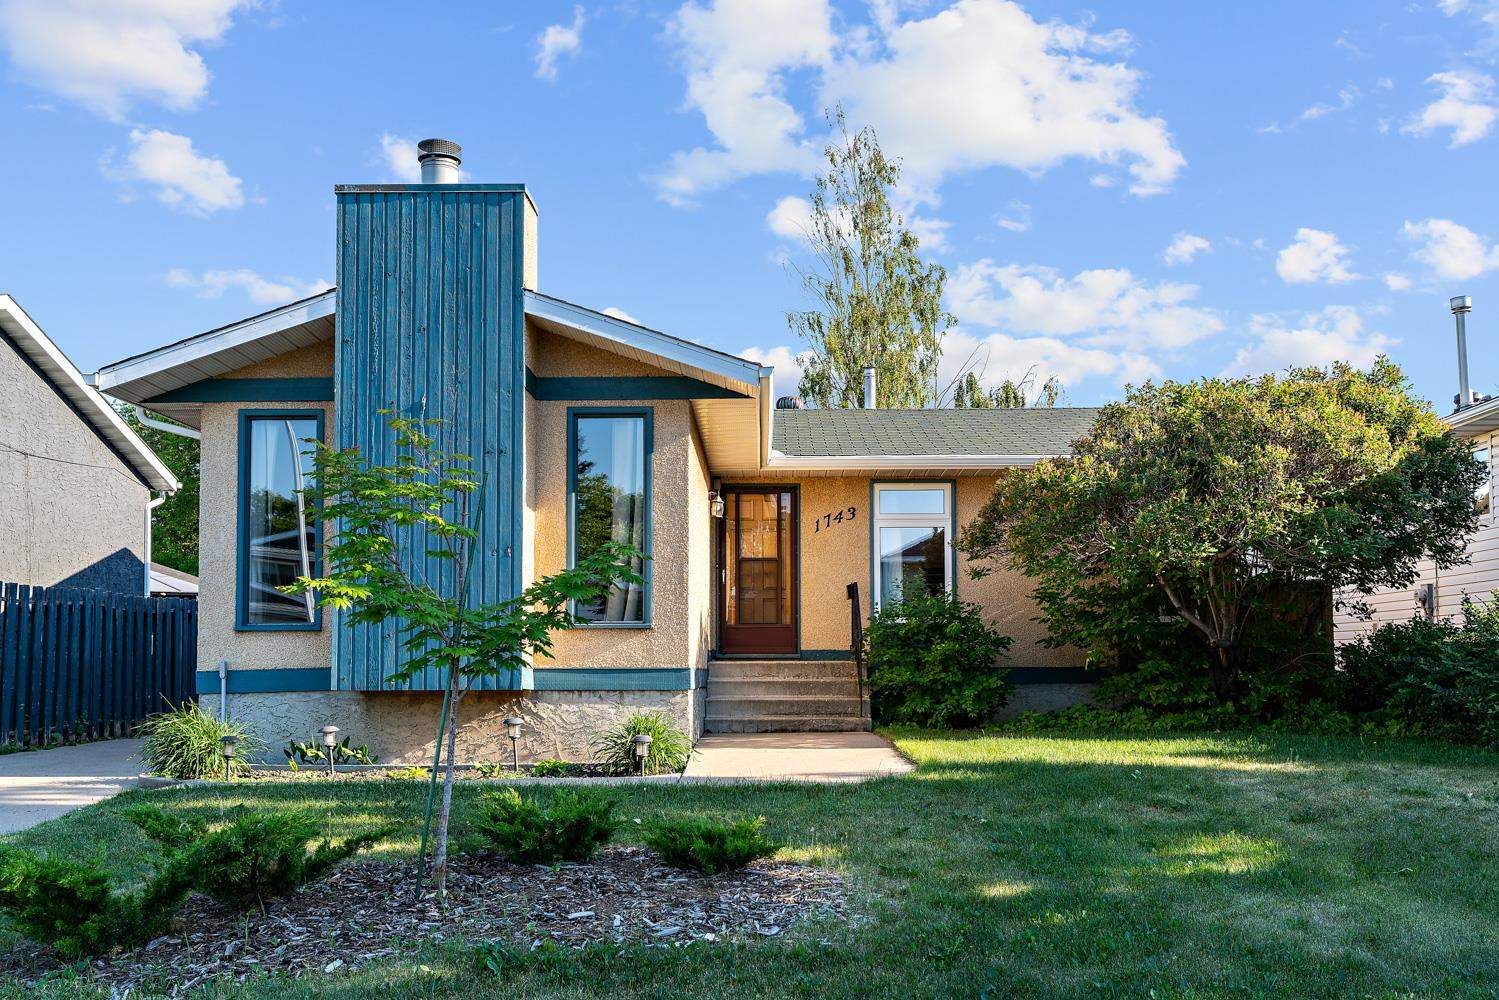 Main Photo: 1743 49A Street in Edmonton: Zone 29 House for sale : MLS®# E4253564